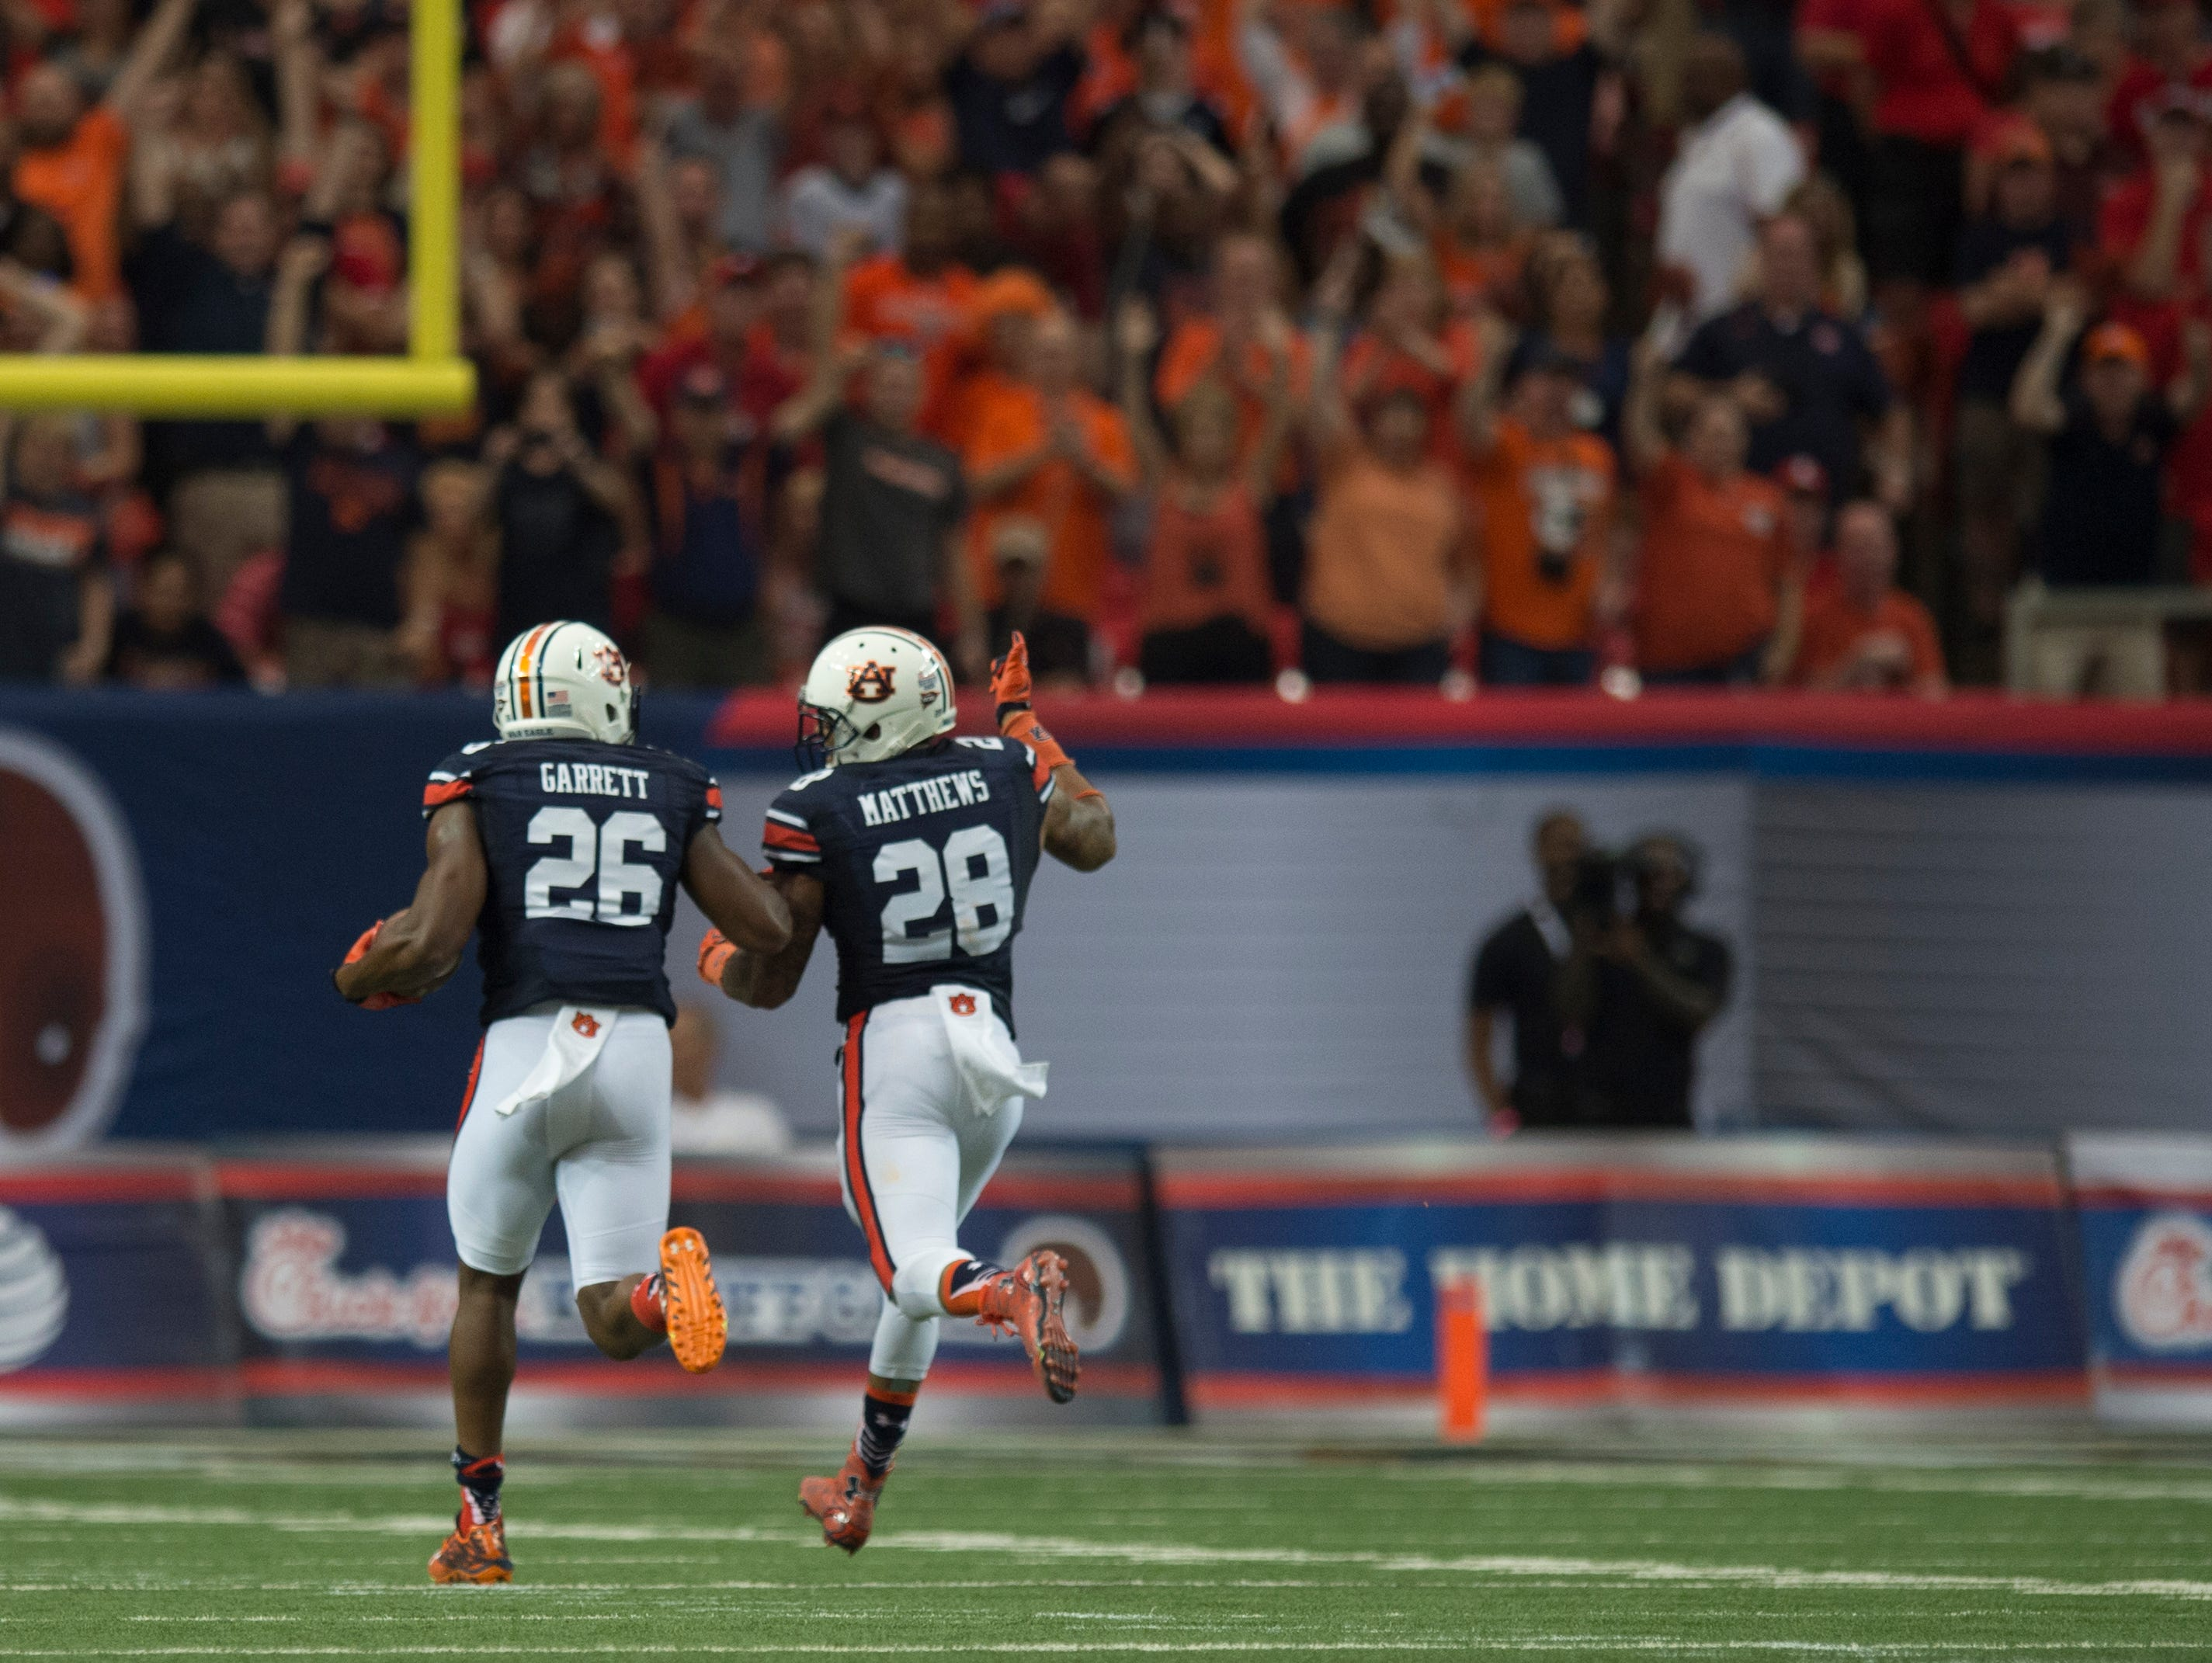 Auburn linebacker Justin Garrett (26) picks up a fumble and returns it for a touchdown during the NCAA football game between Auburn and Louisville on Saturday, Sept. 5, 2015, in at the Georgia Dome in Atlanta, Ga.